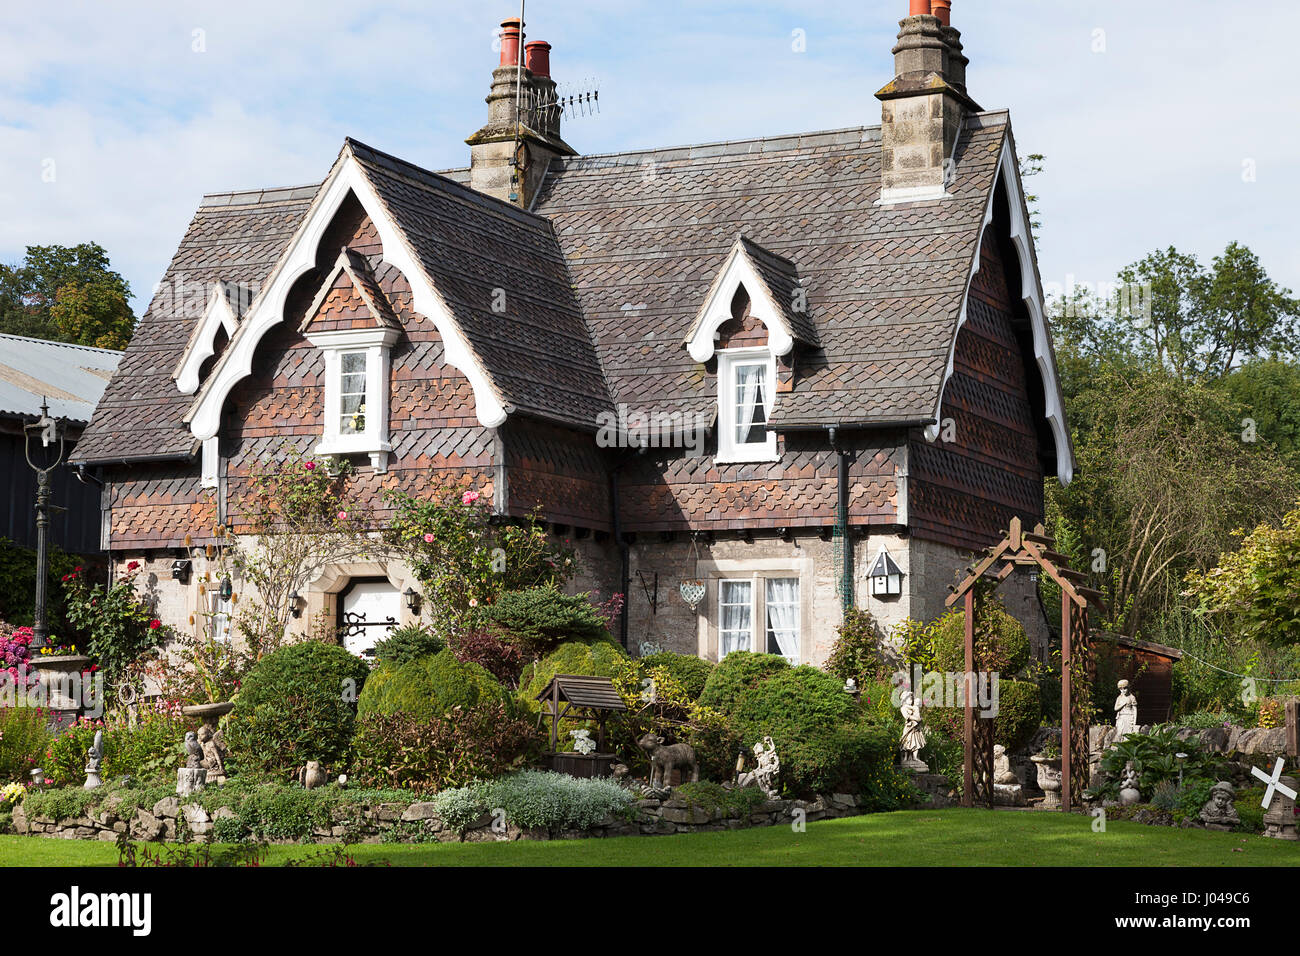 A Victorian Style House With Tiled Roof And Decorative